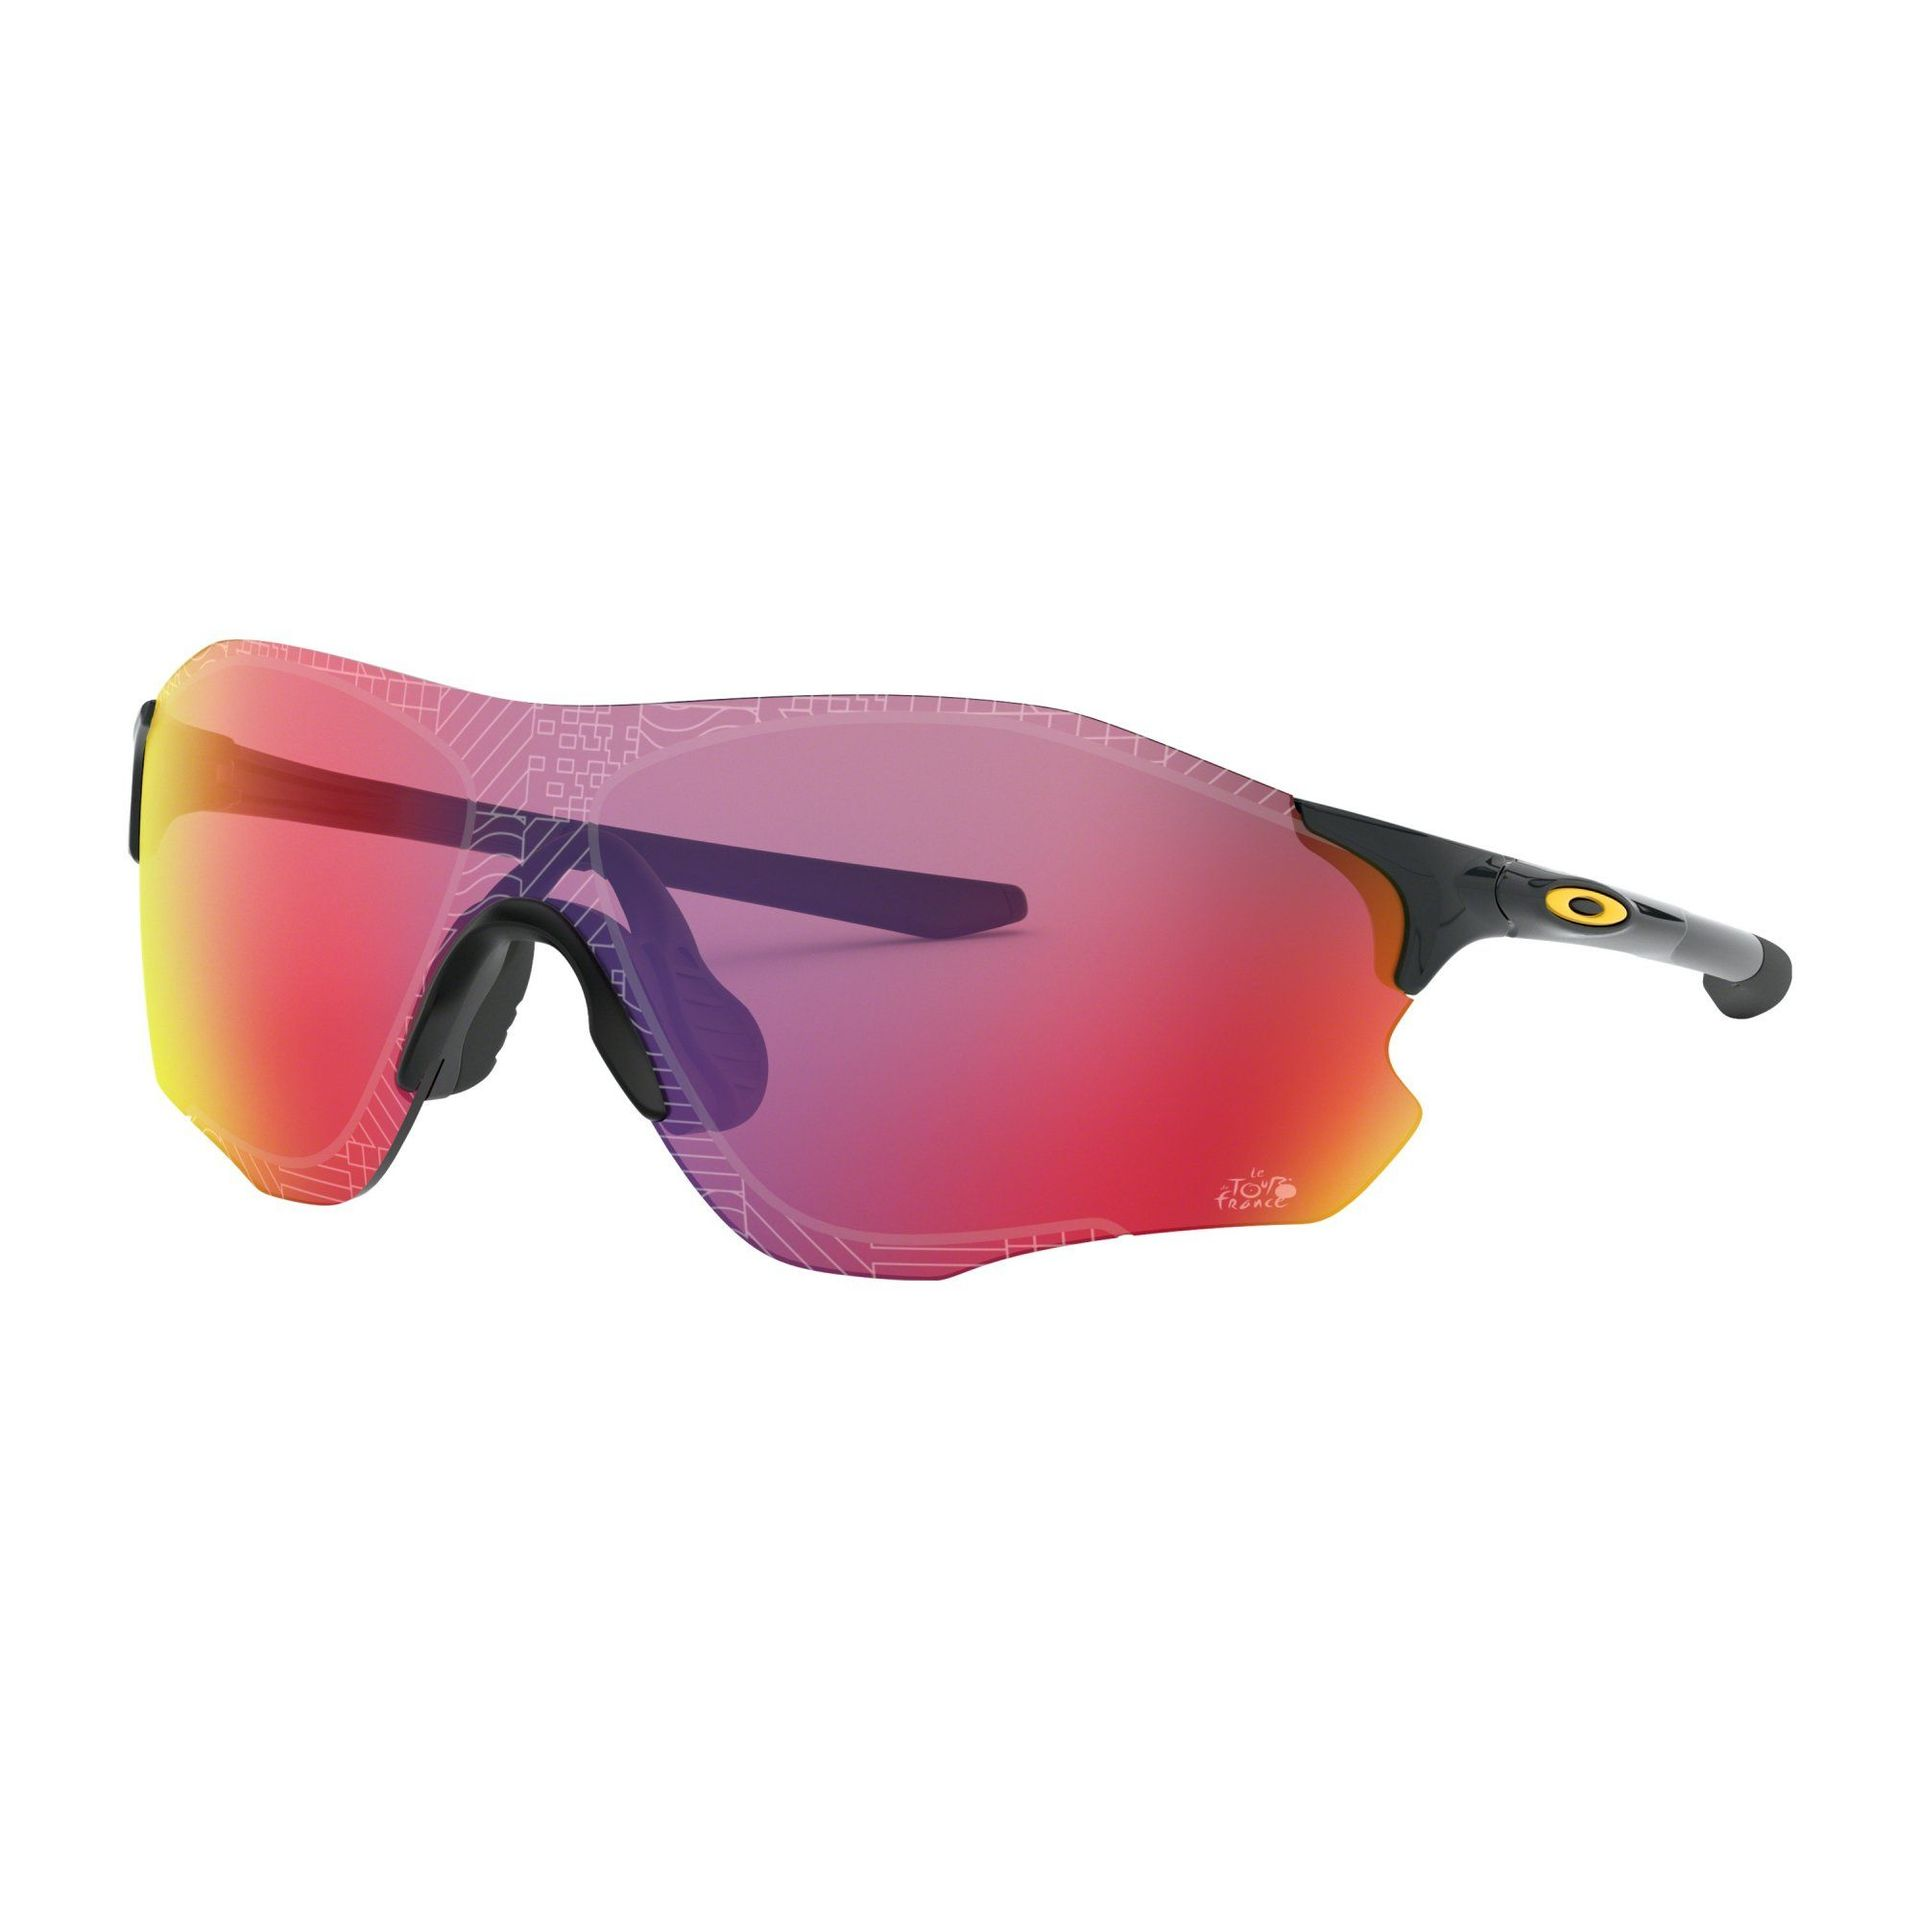 OKULARY OAKLEY EVZERO PATH TOUR DE FRANCE CARBON|PRIZM ROAD 1